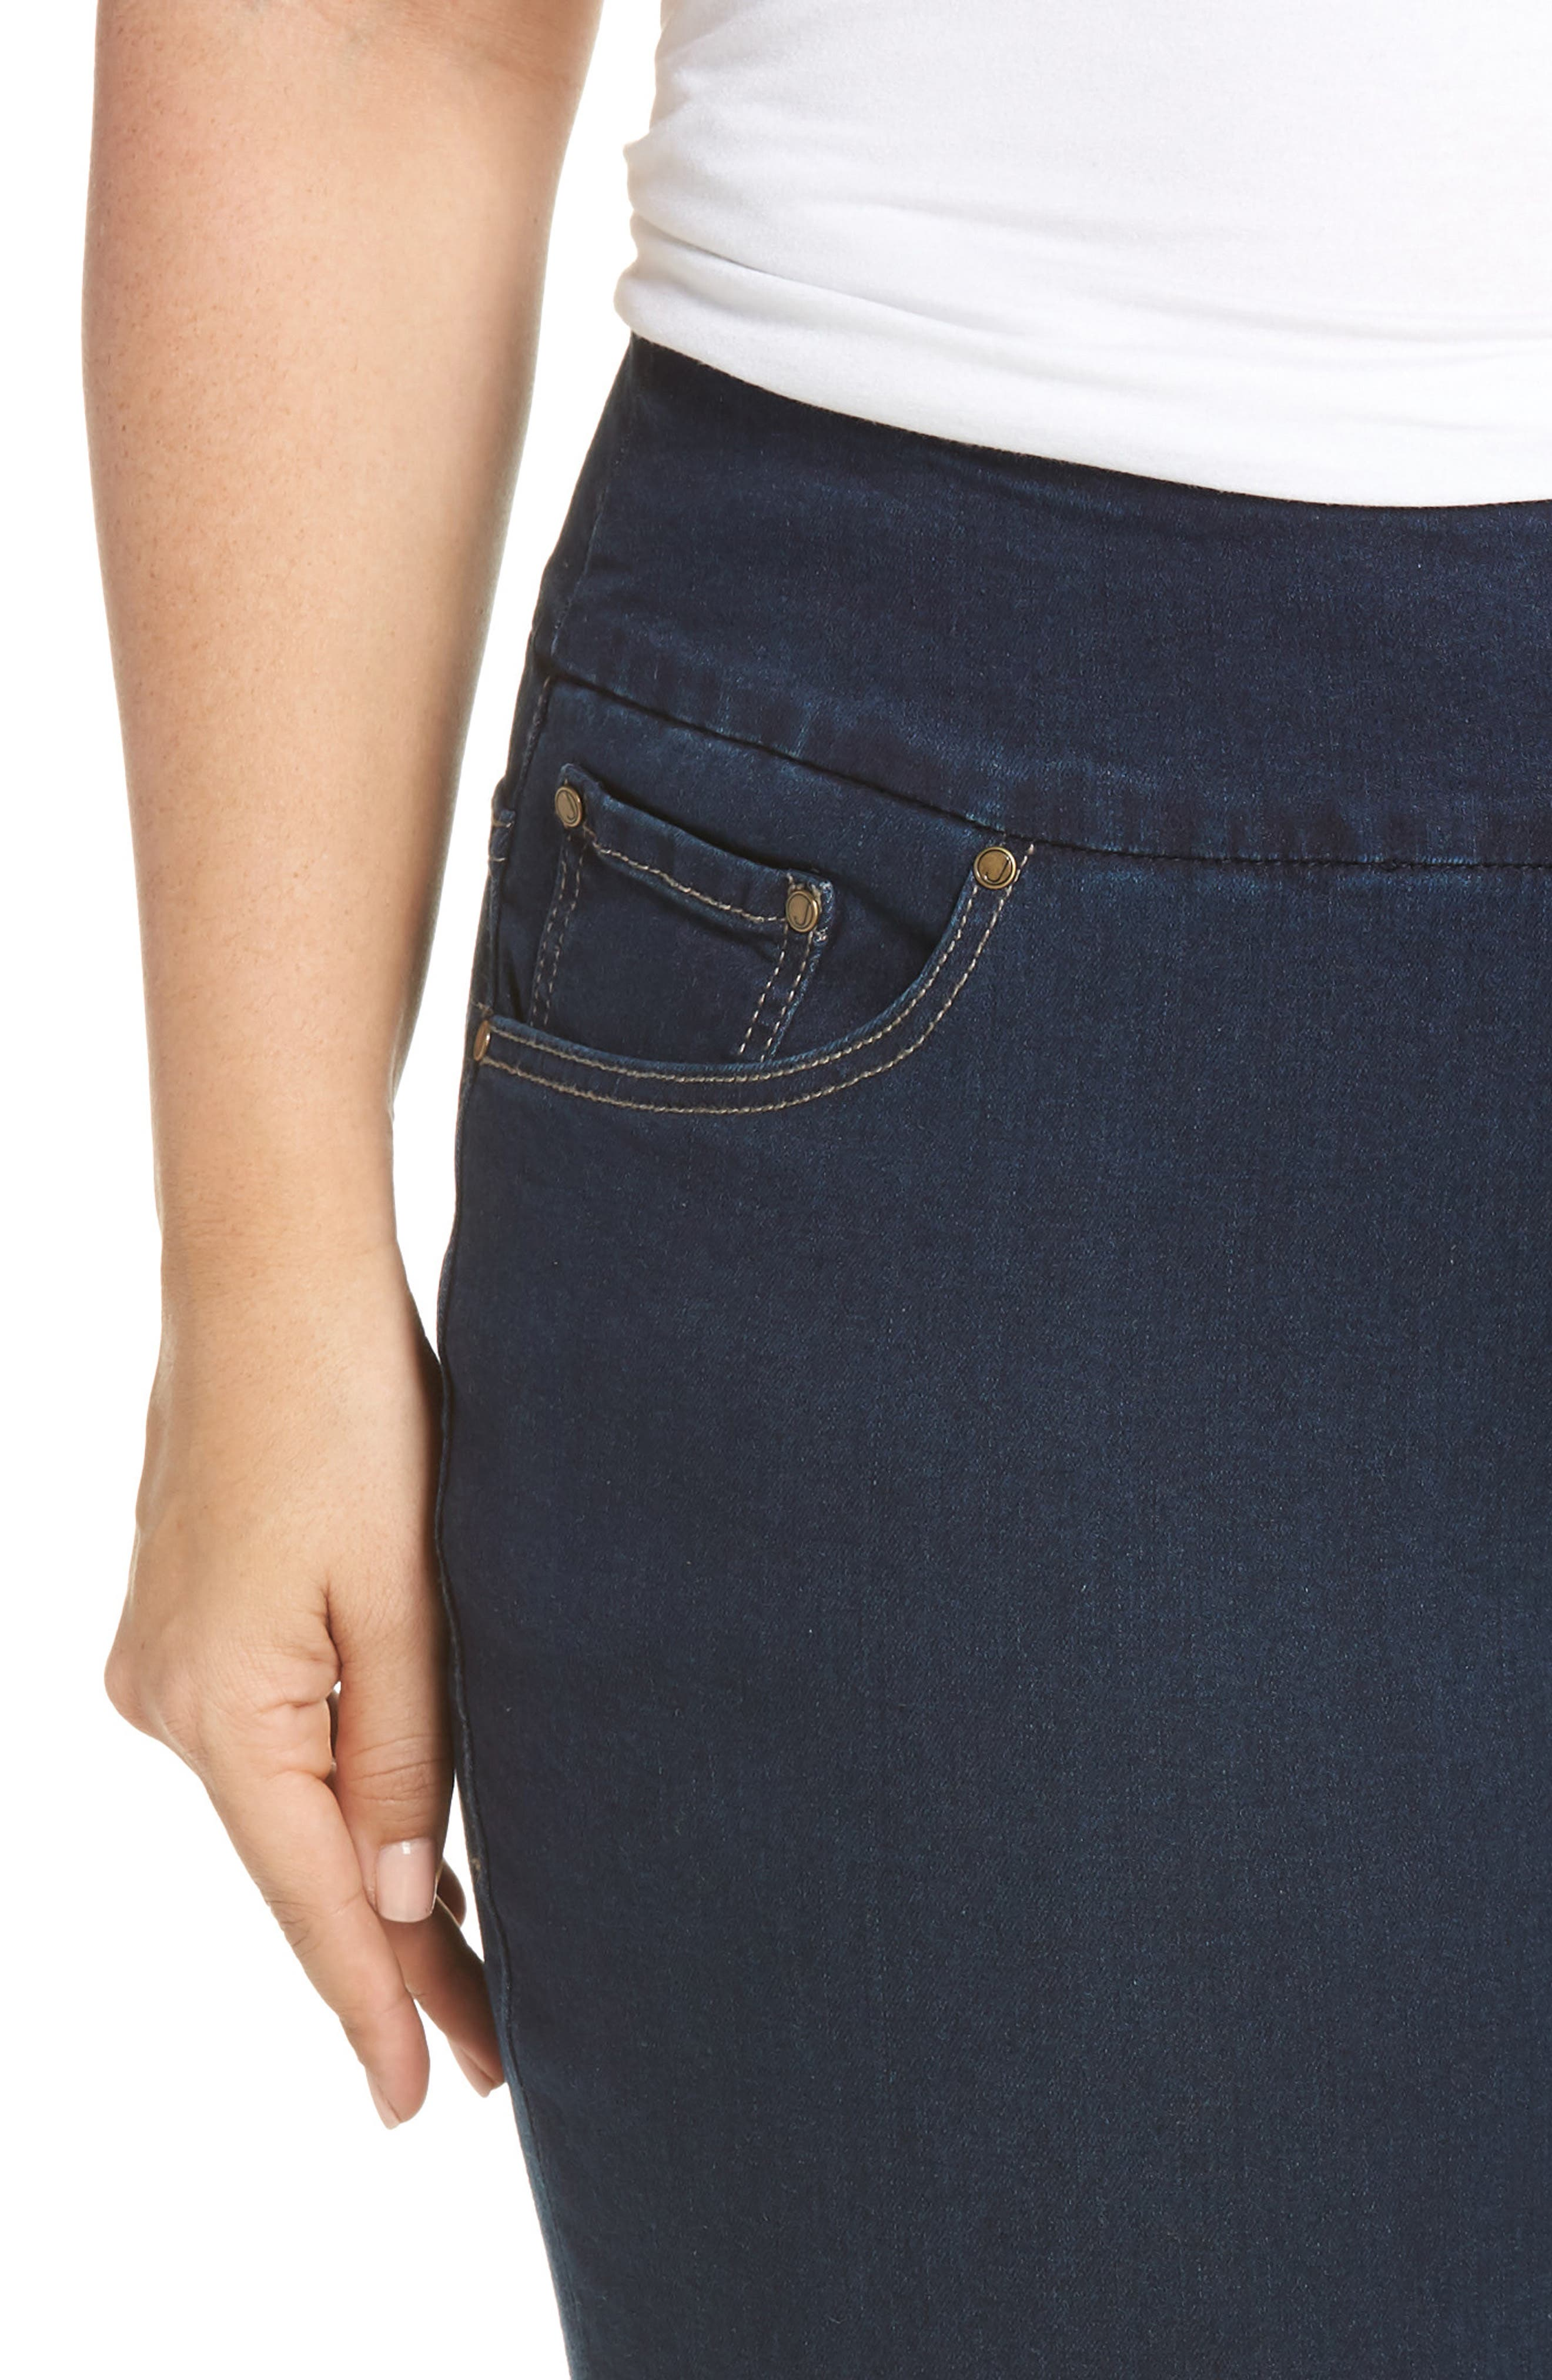 JAG JEANS, Paley Pull-On Bootcut Jeans, Alternate thumbnail 5, color, MED INDIGO